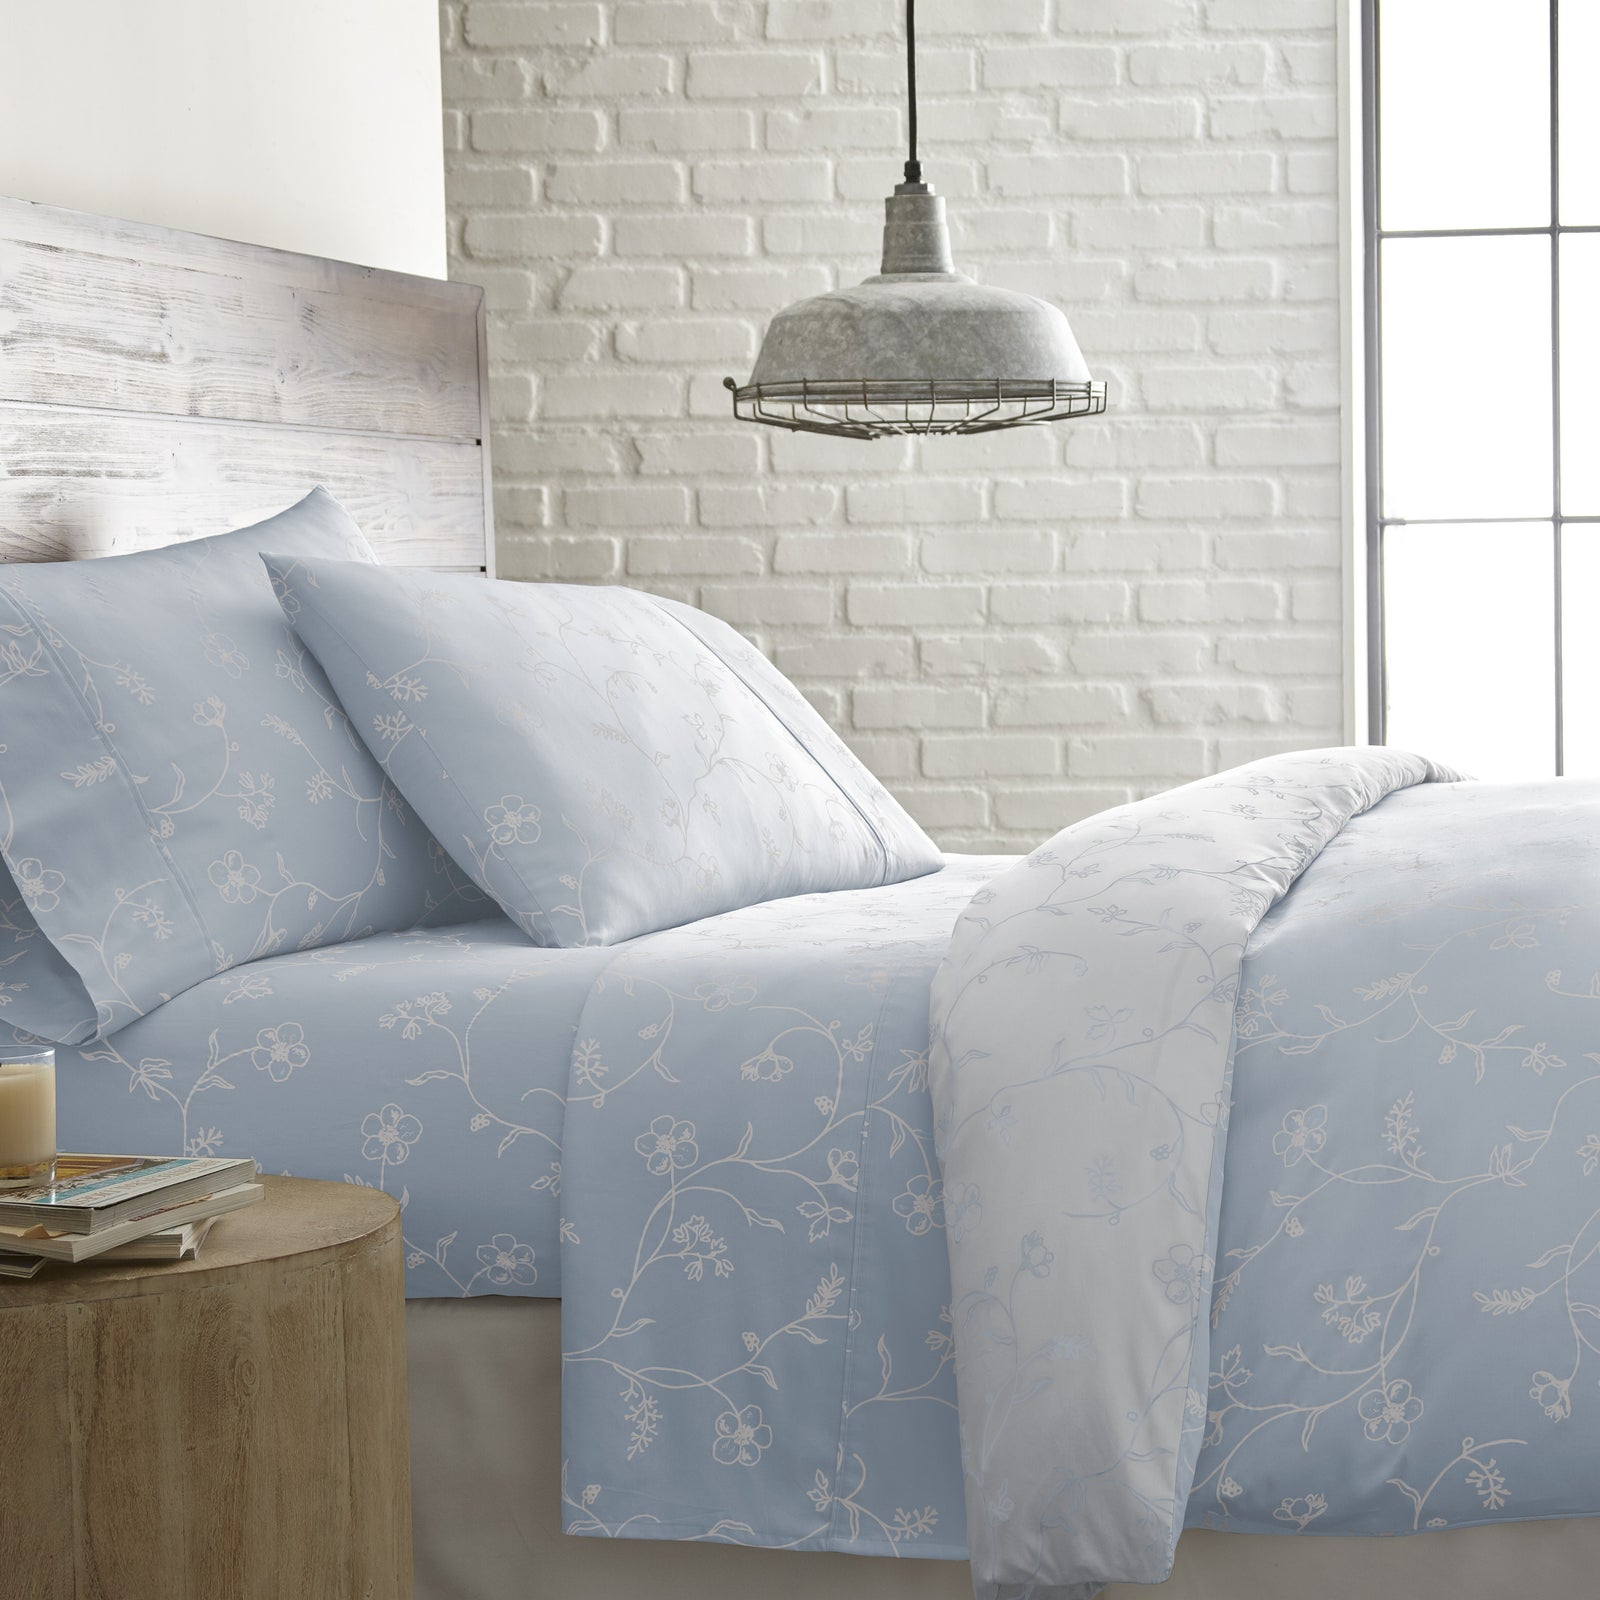 Anatomy Of A Bed Sheet Set The Southshore Fine Linens Blog